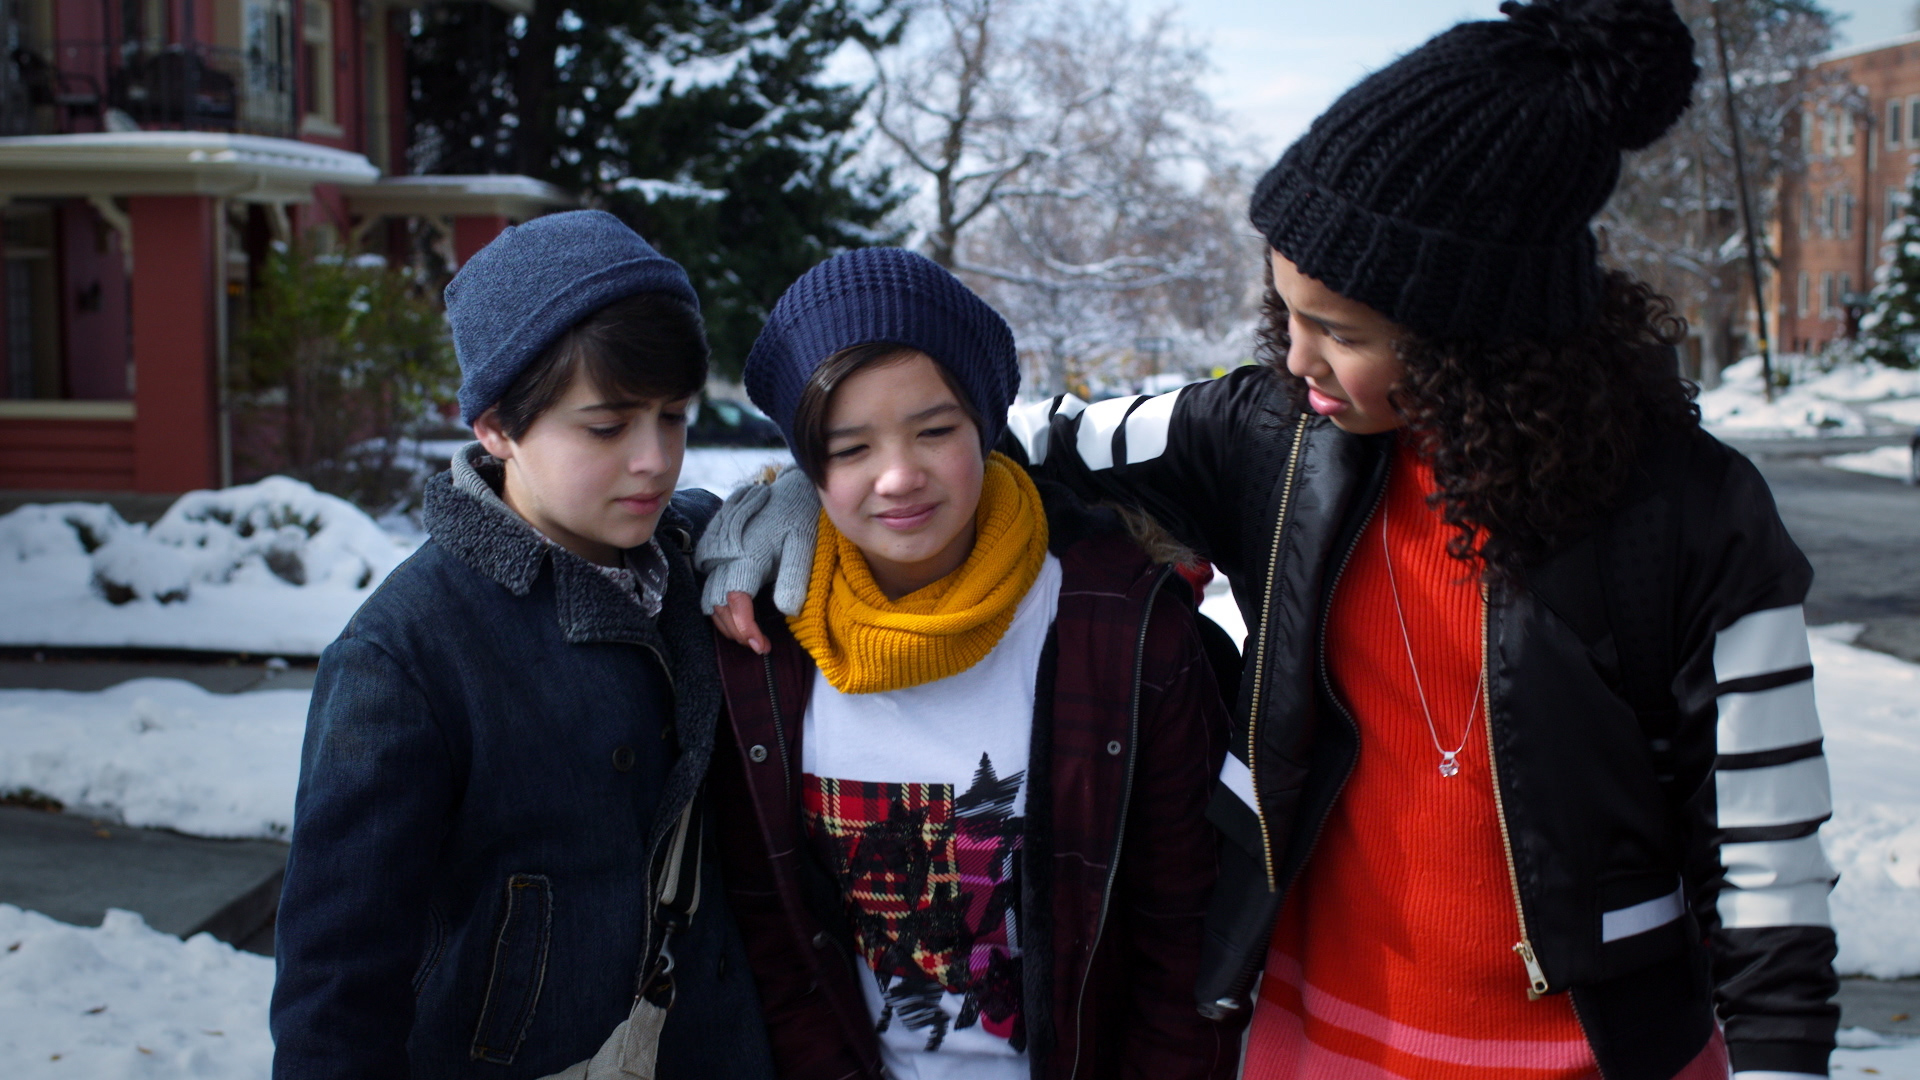 Disney Channel's Andi Mack will tackle gun safety in upcoming episodes